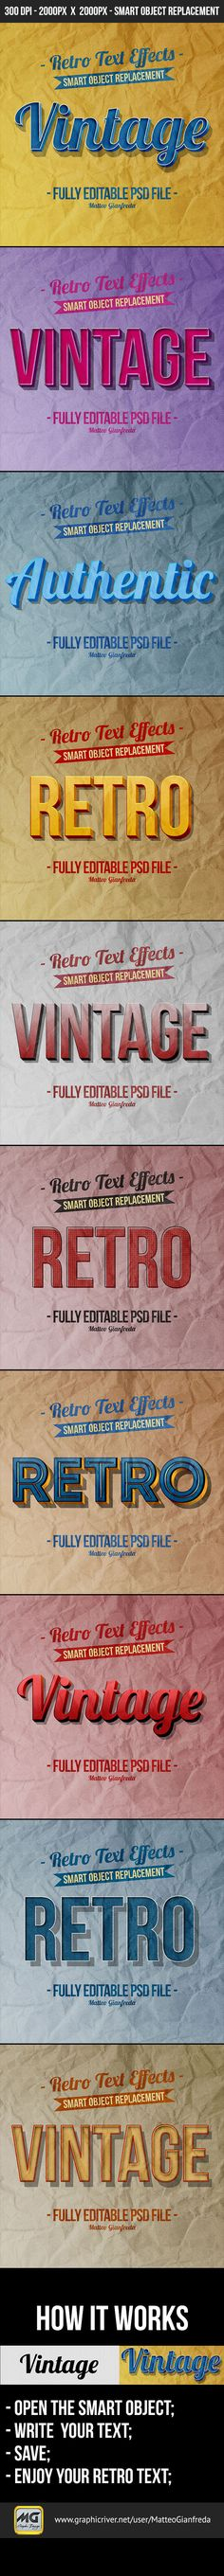 Retro Vintage Text Effects for Photoshop. Download here: http://graphicriver.net/item/retro-vintage-text-effects/10330477?ref=ksioks